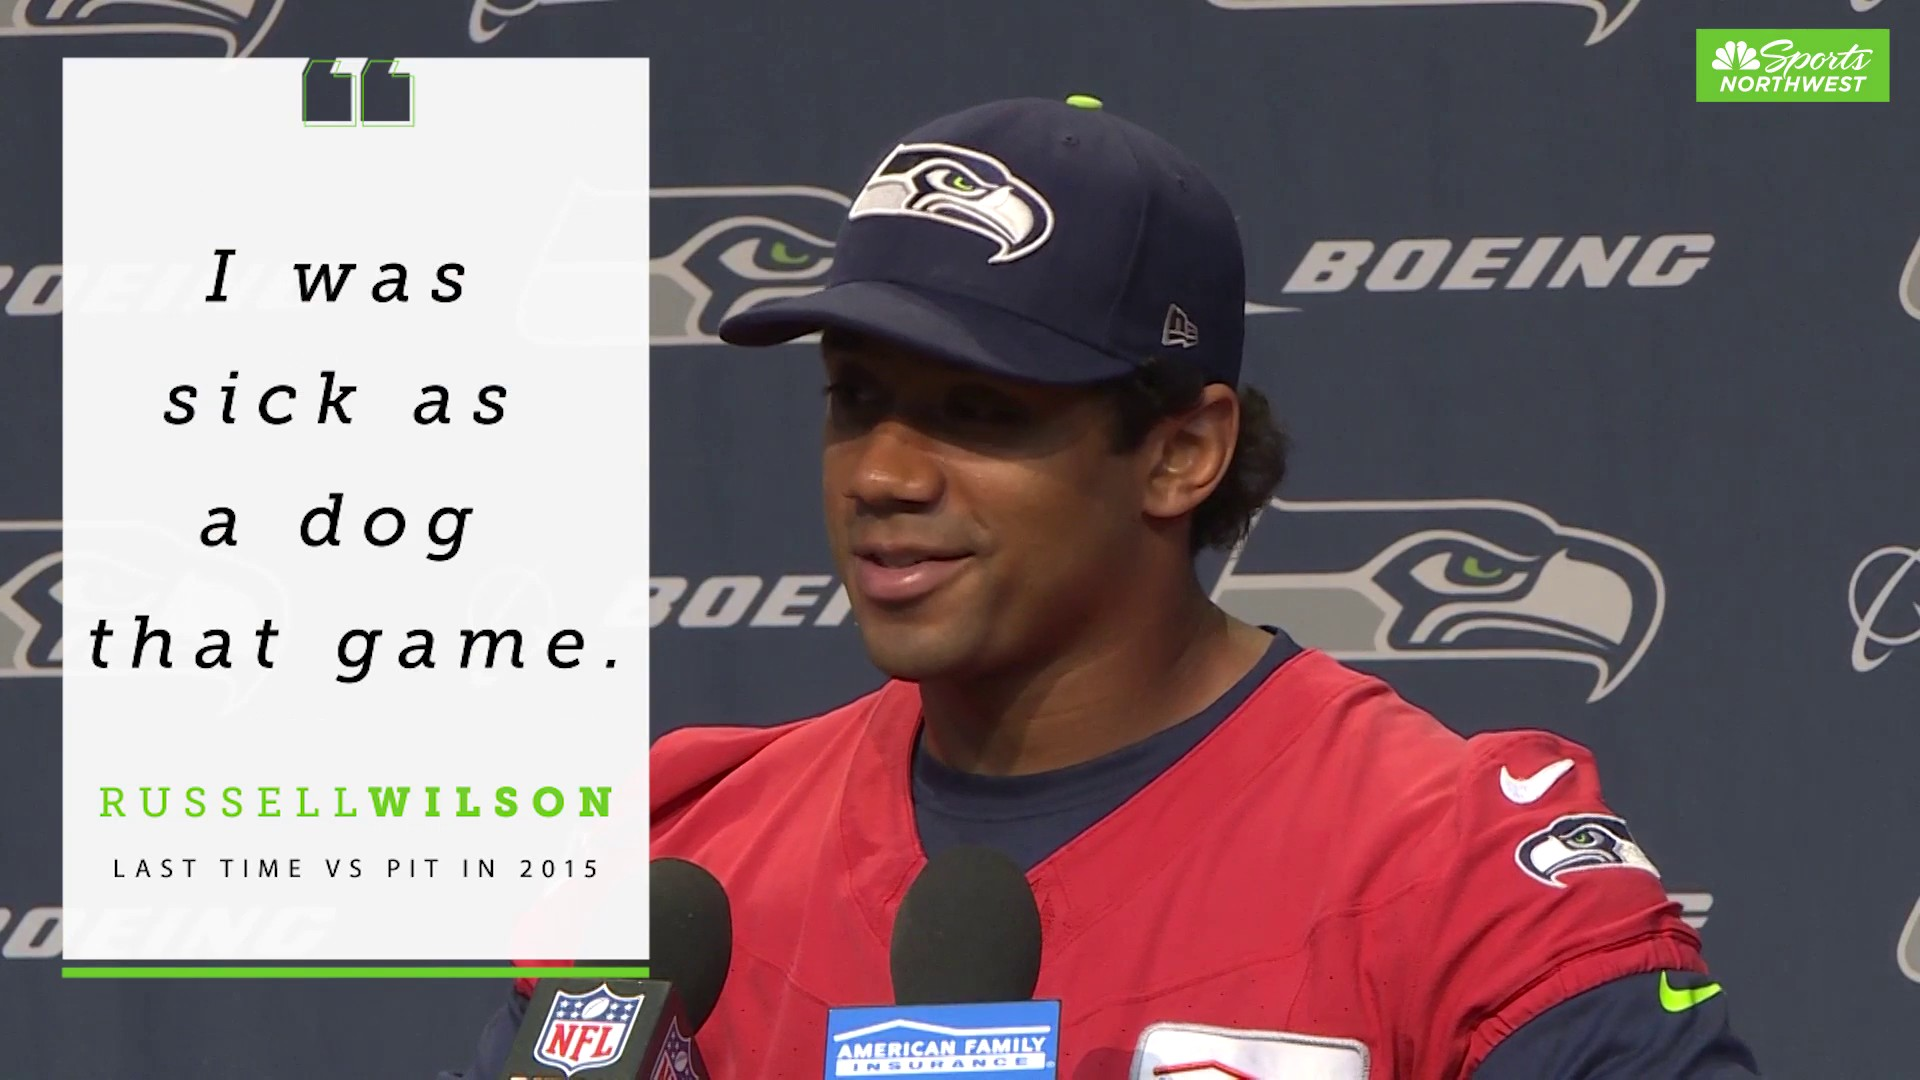 The last time Russell Wilson faced PIT he didn't feel well